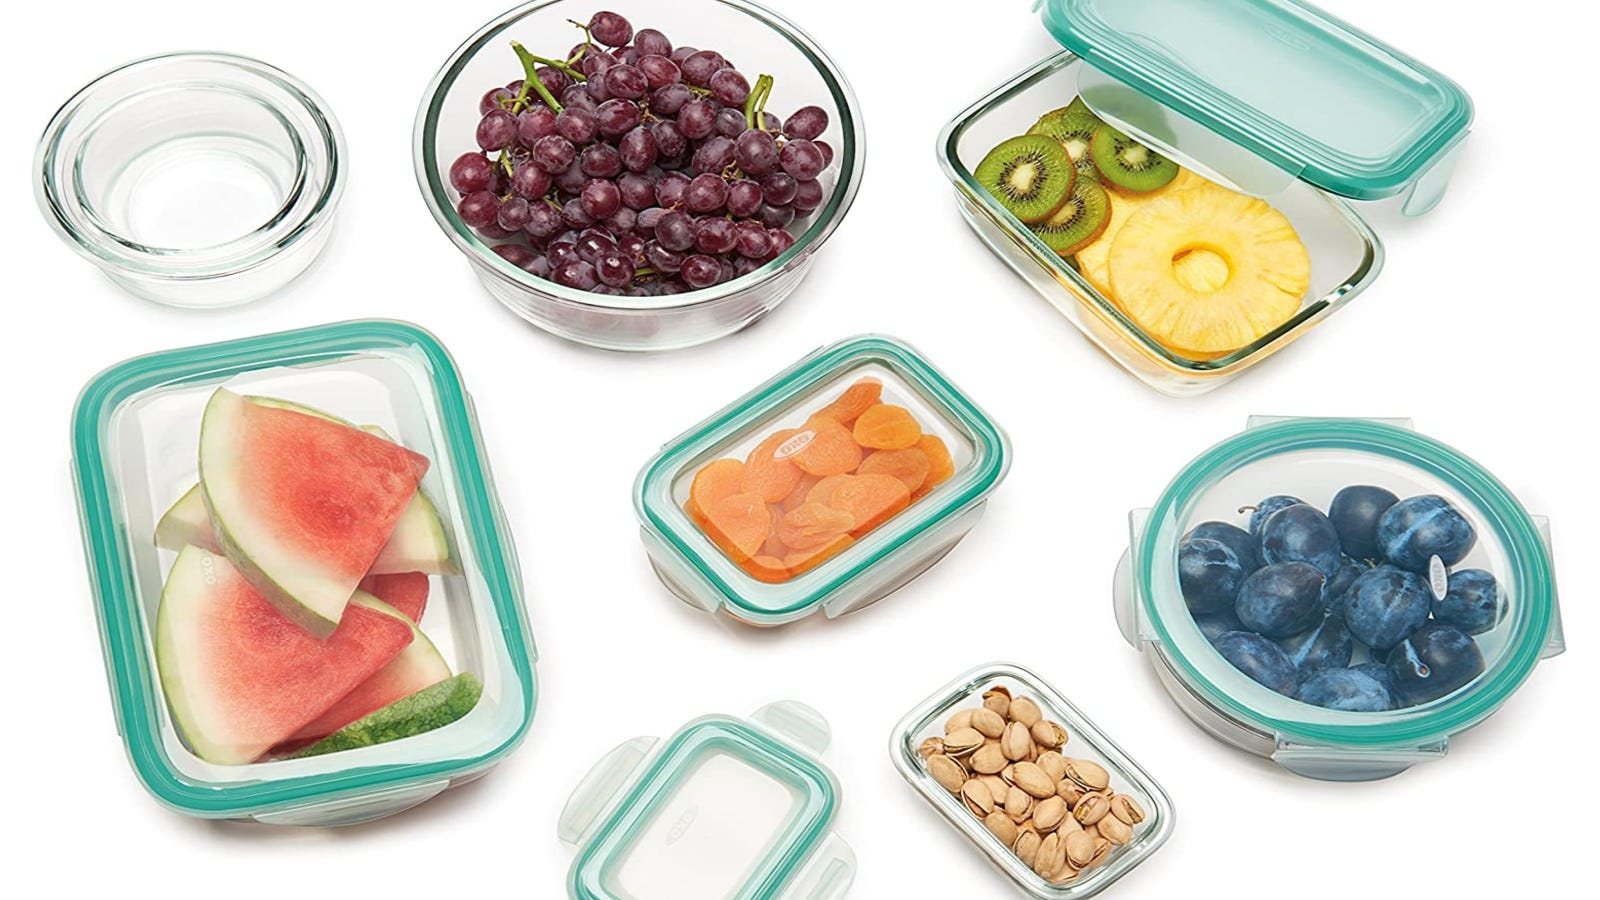 An assortment of OXO glass food storage containers filled with various foods on a white background.